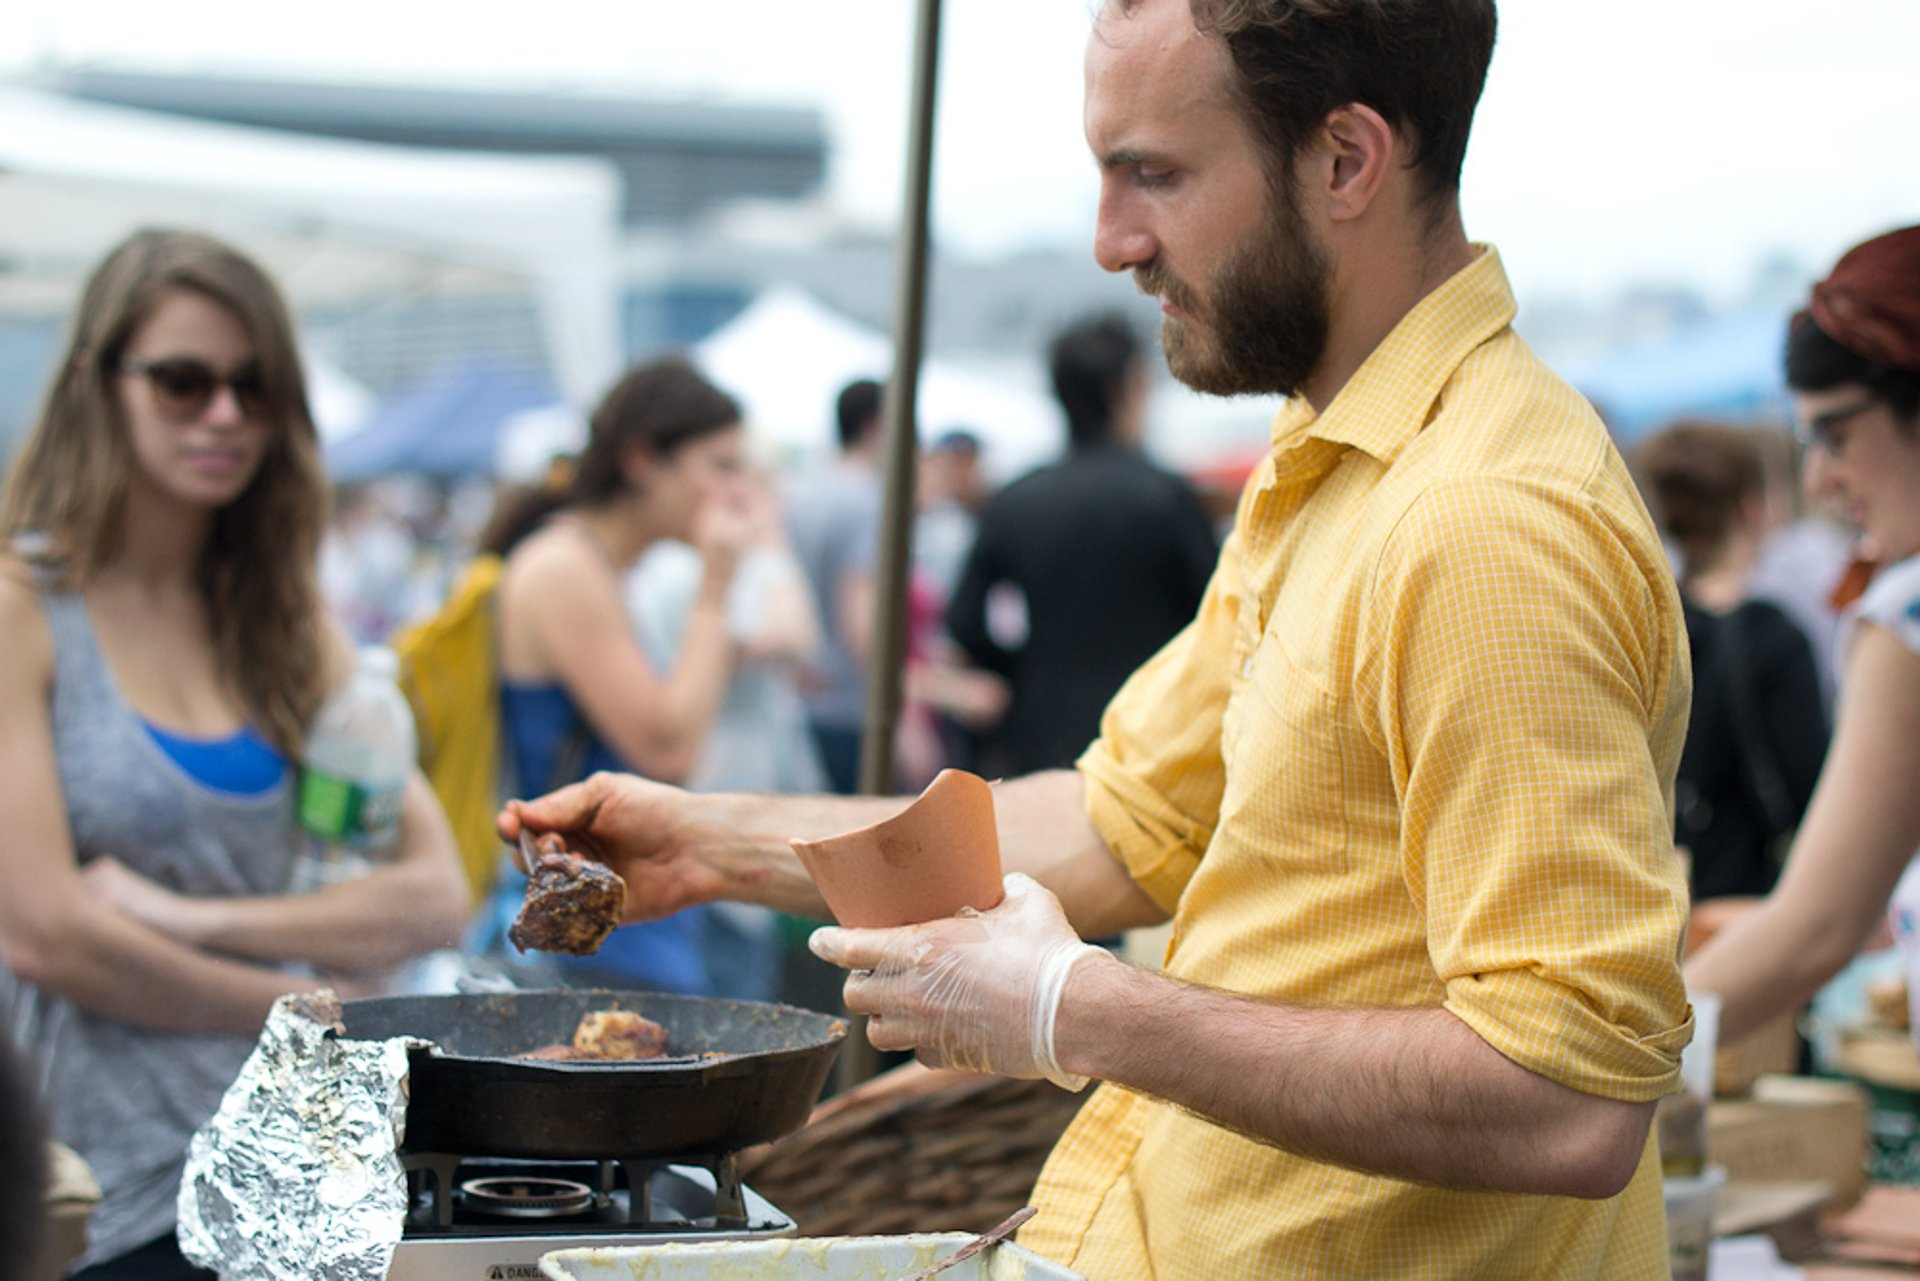 Cooking 'Hot Sticky Mess' at Brooklyn Flea, Williamsburg 2020